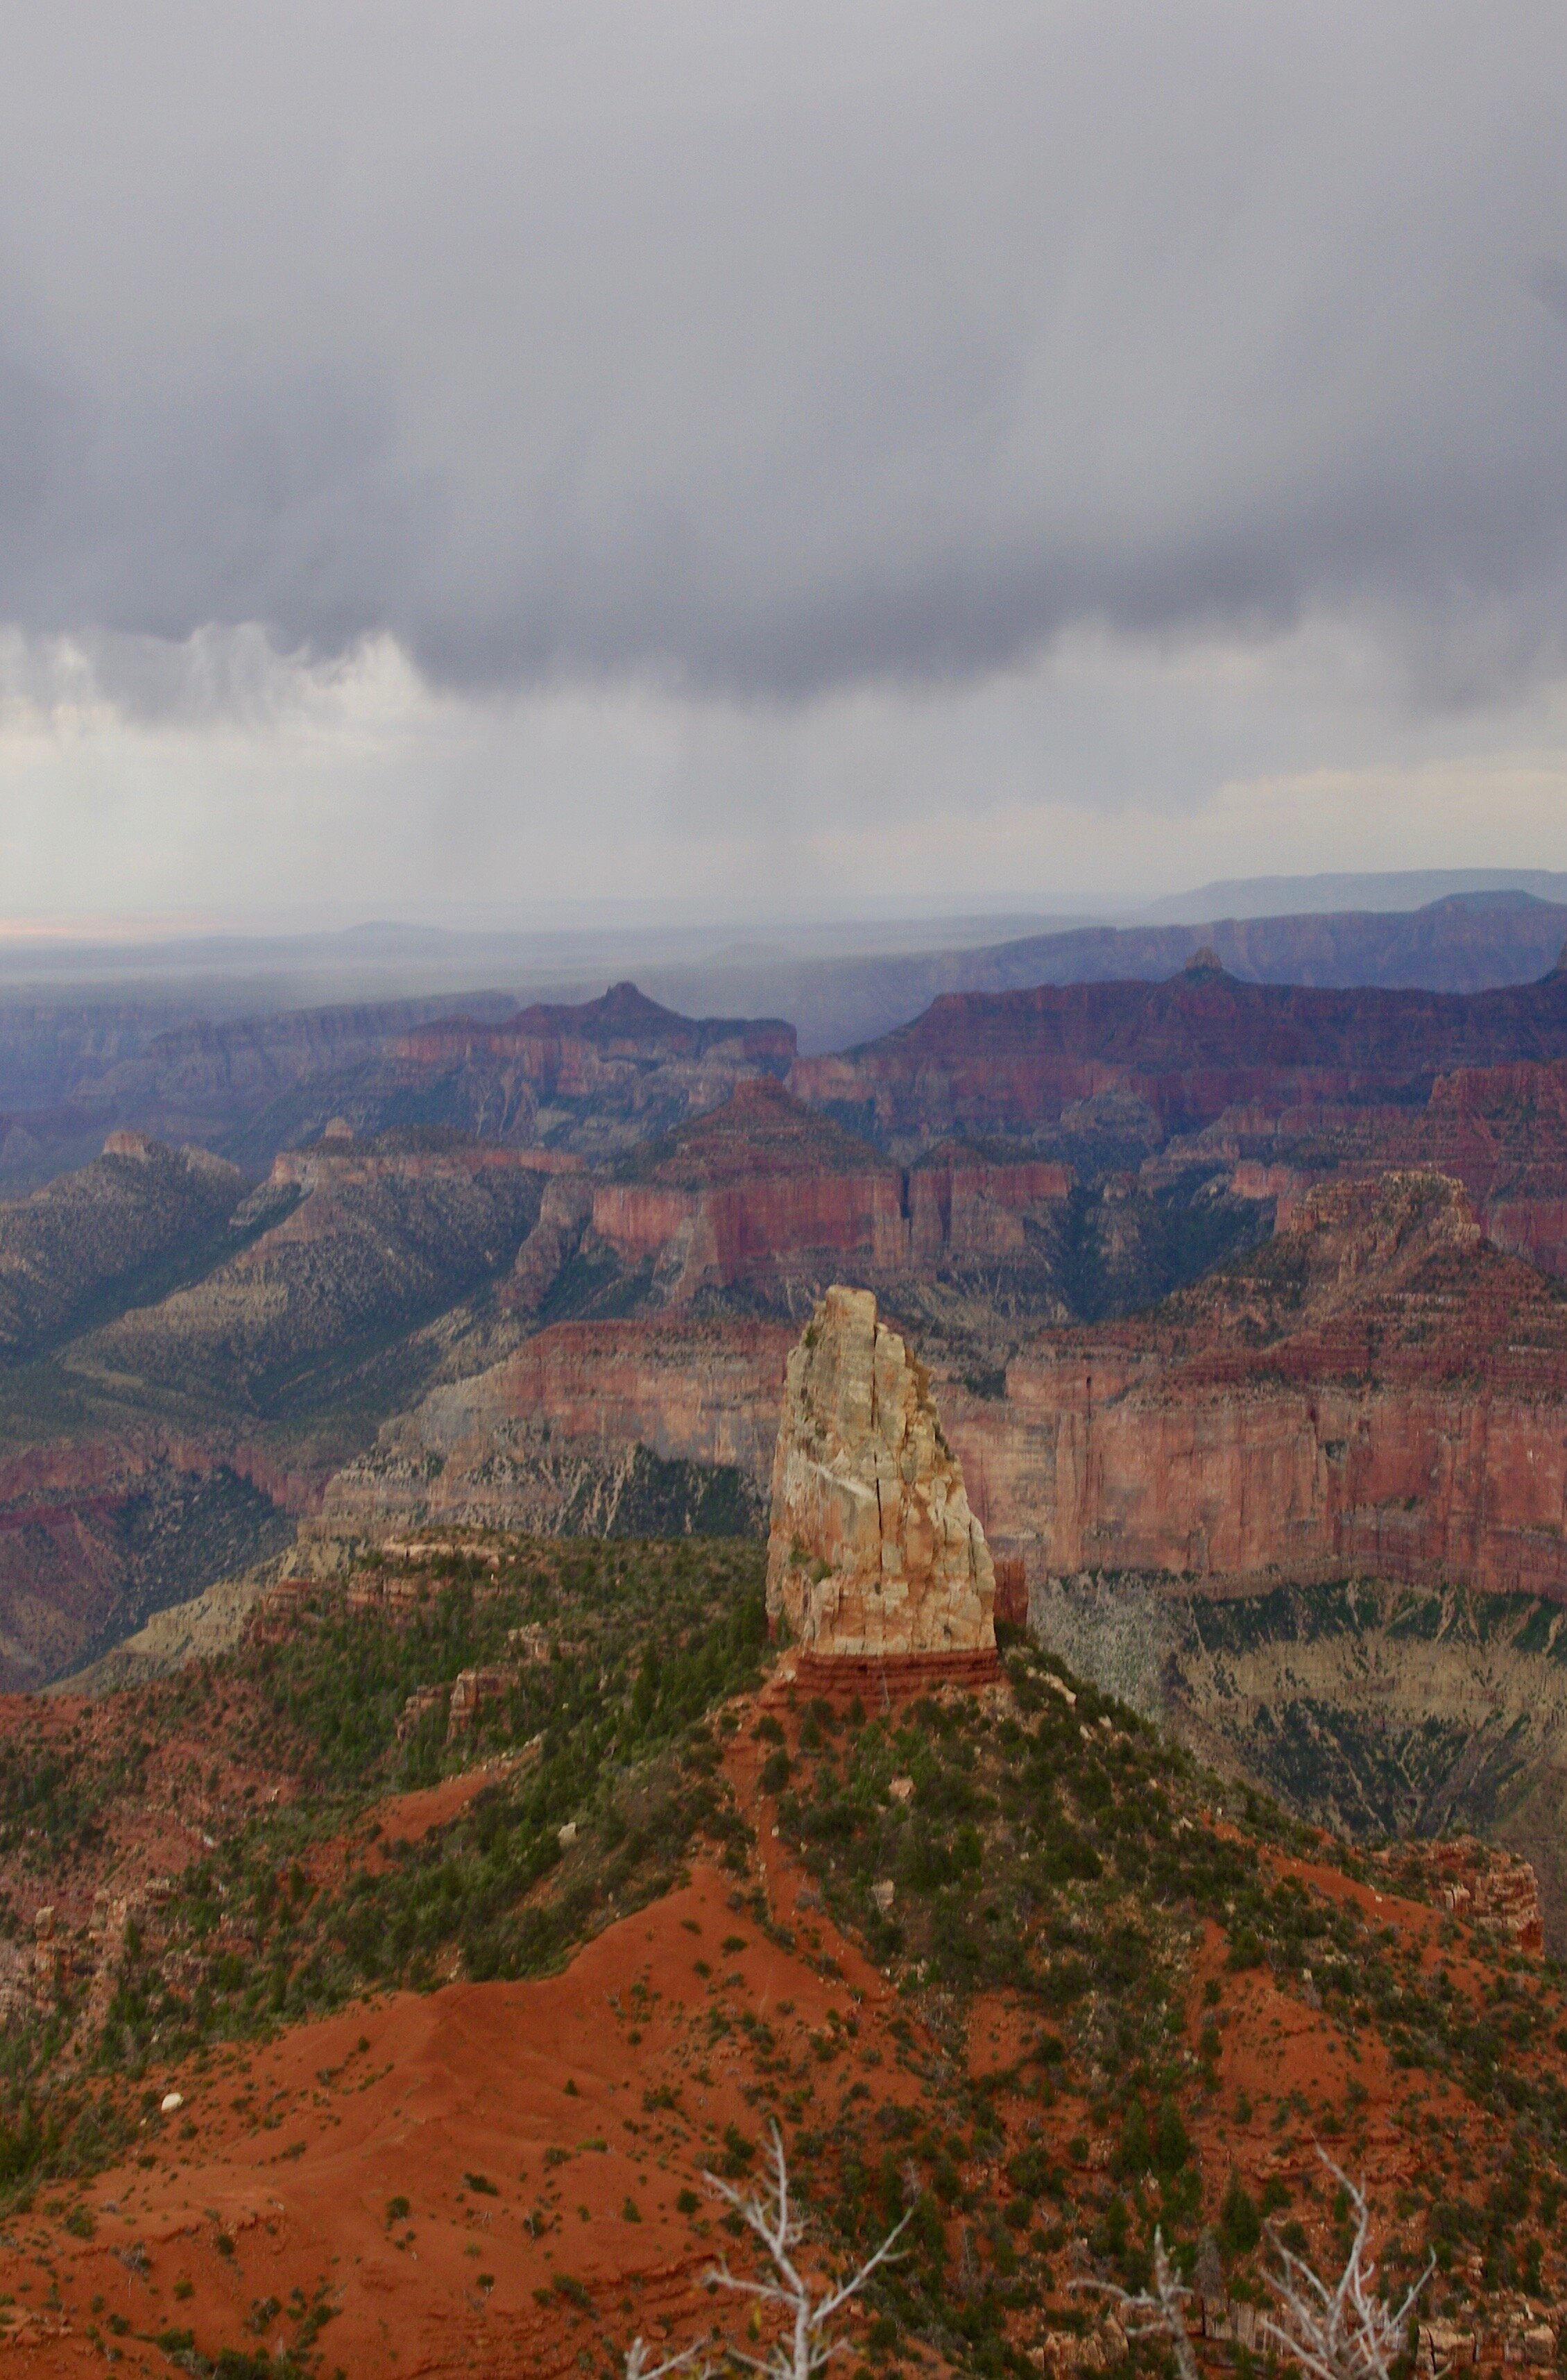 THIS is the North Rim, and you can see what the weather was like. I didn't reach the rim until late afternoon, and fortunately it was not raining in the place where I was standing.